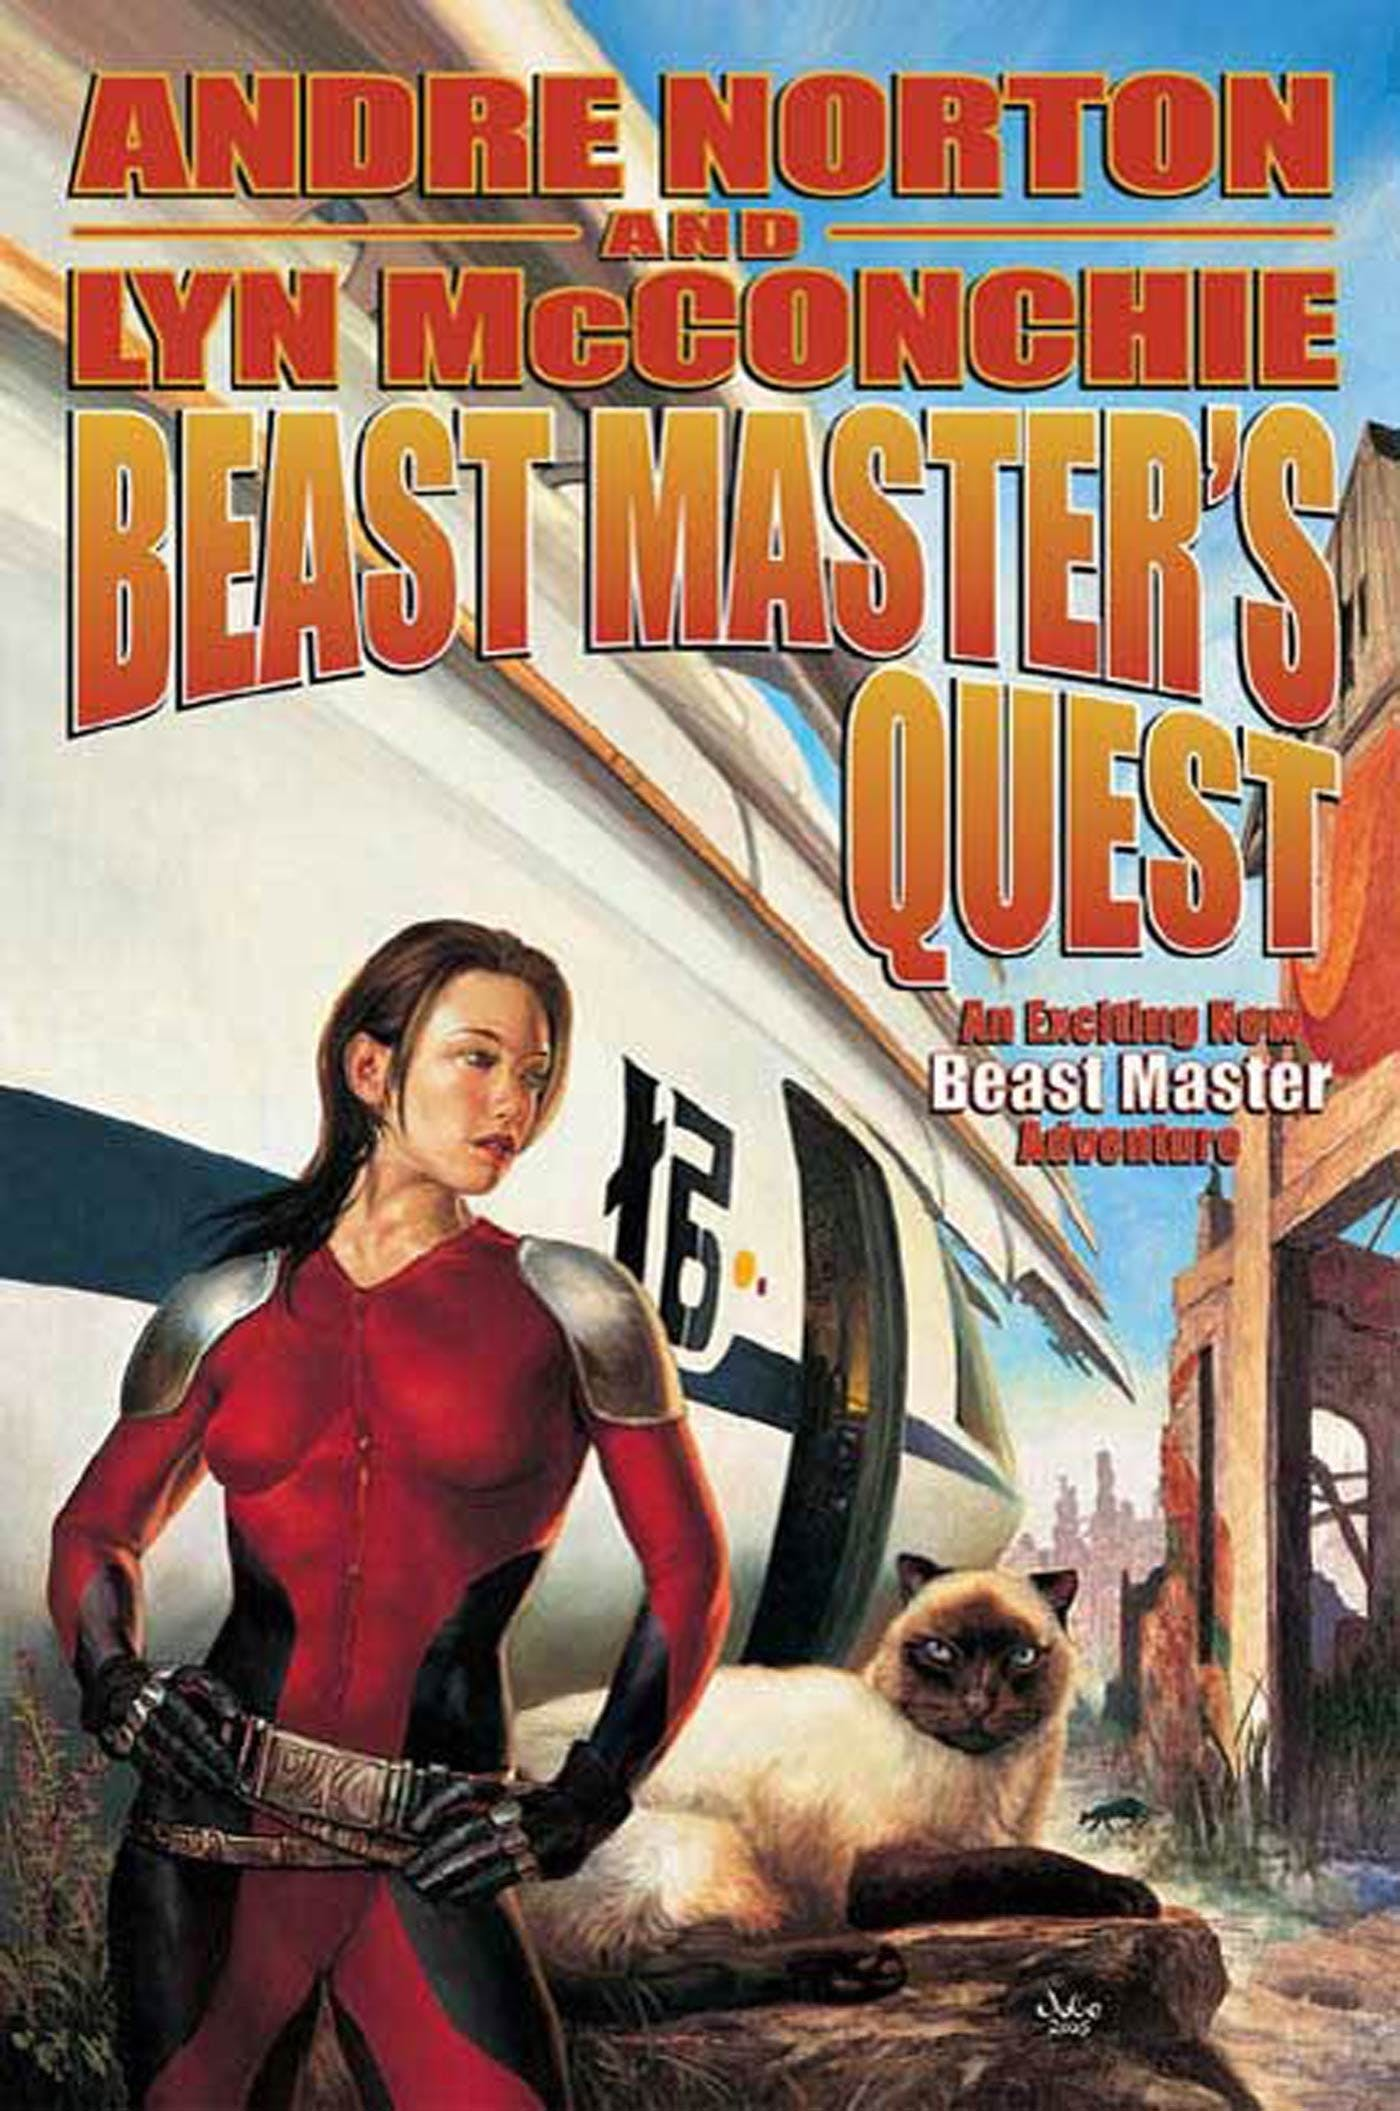 Image of Beast Master's Quest